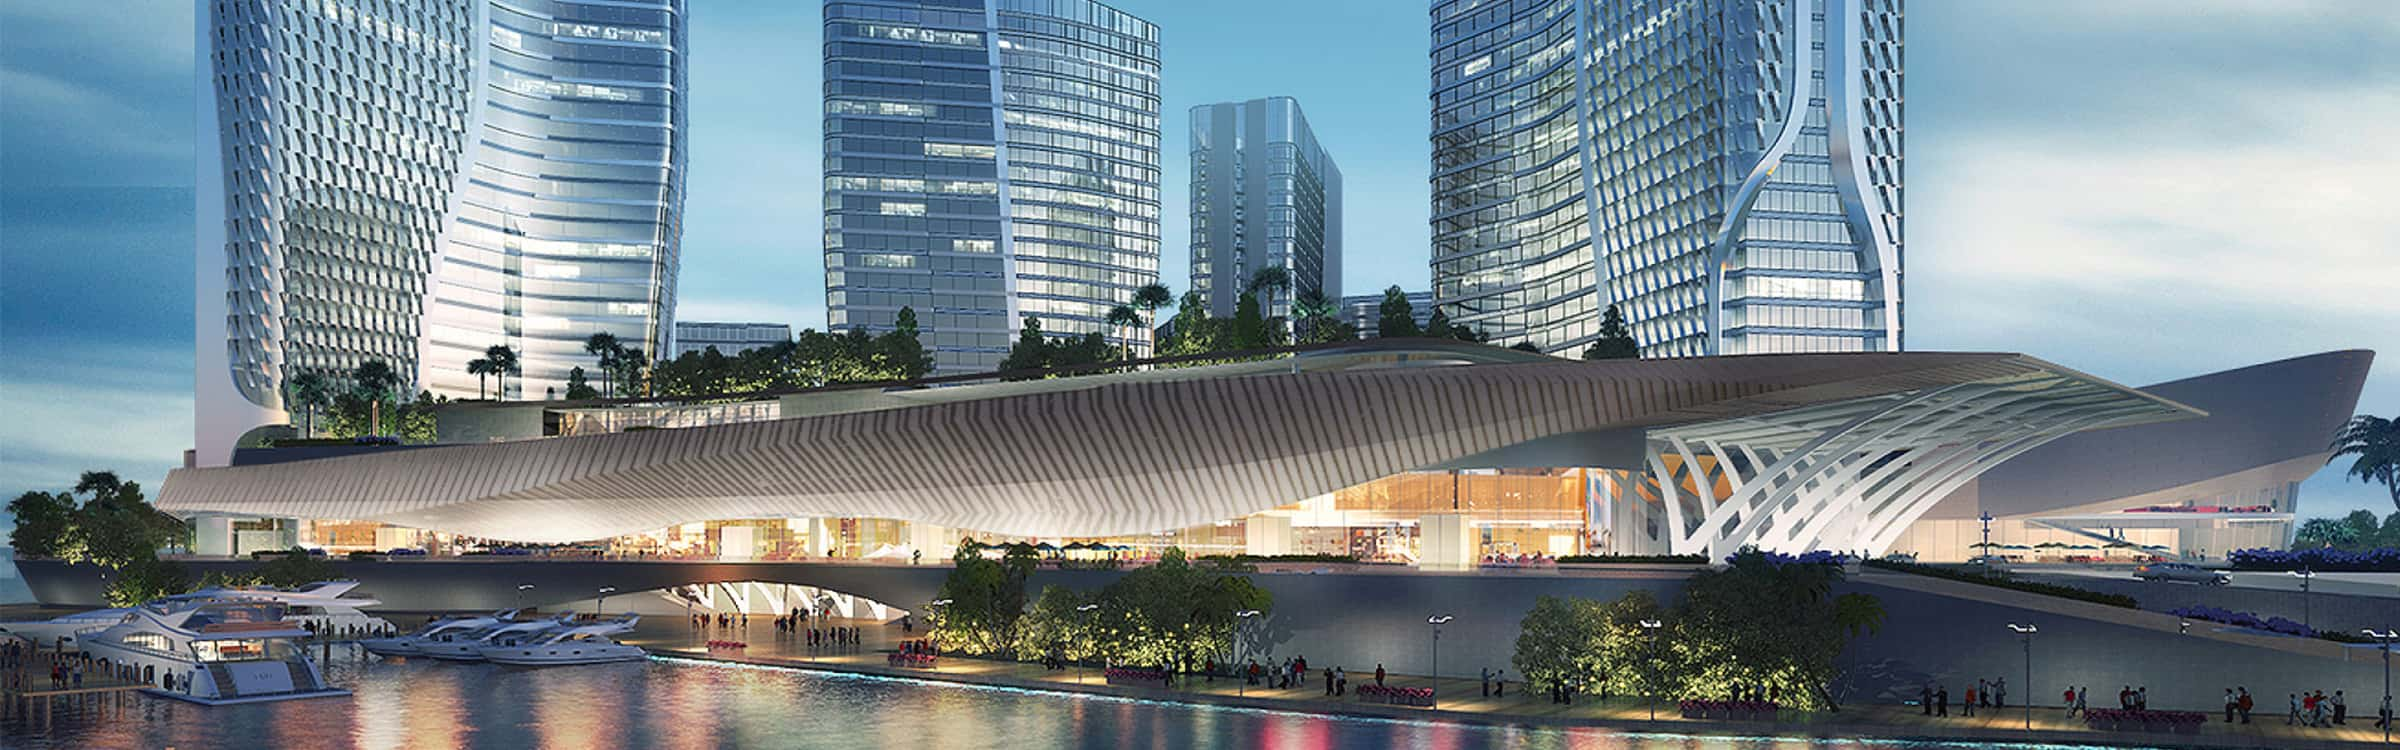 Waterfront-Integrated-Resort-Project-2400-x-750